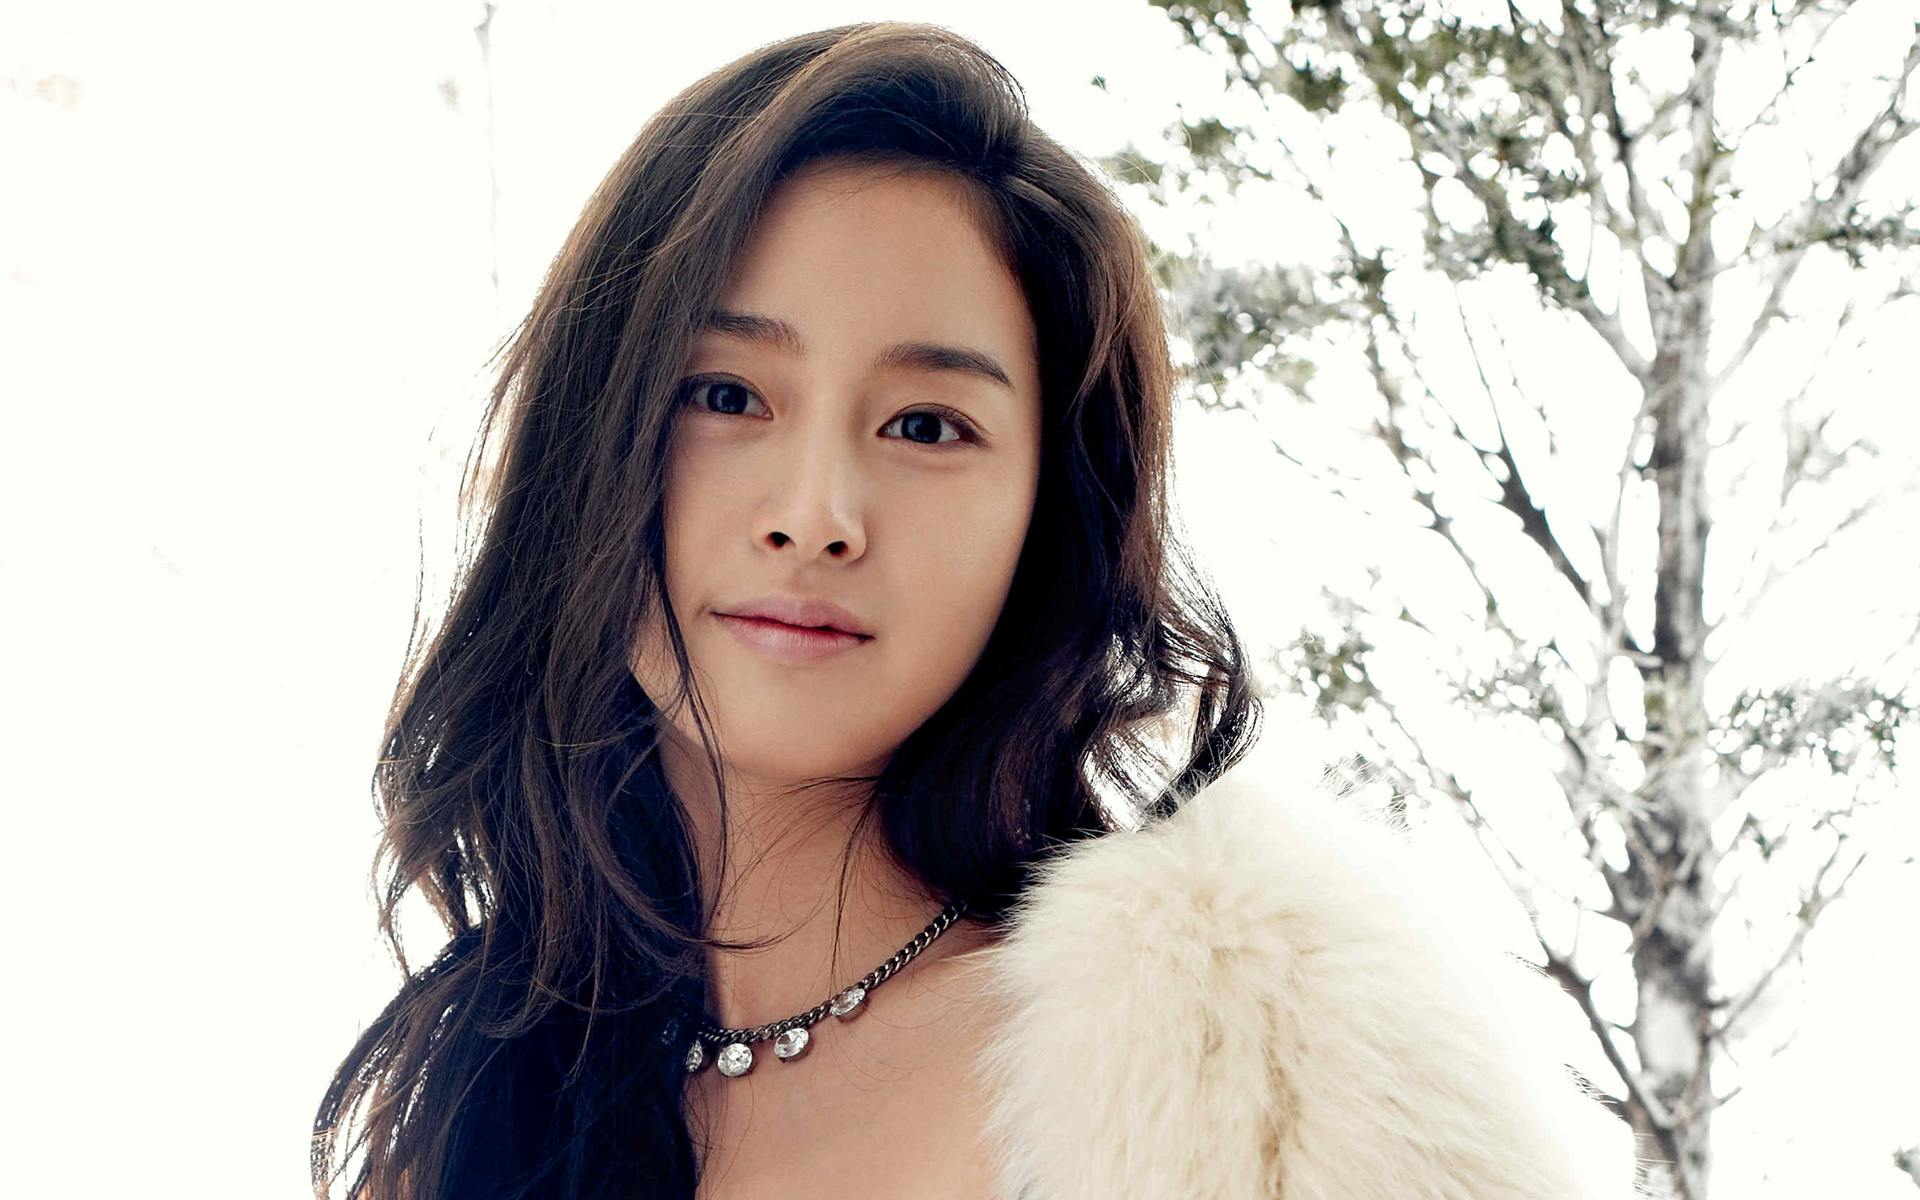 Kim Tae Hee Continues To Have A Busy Schedule Even While Pregnant